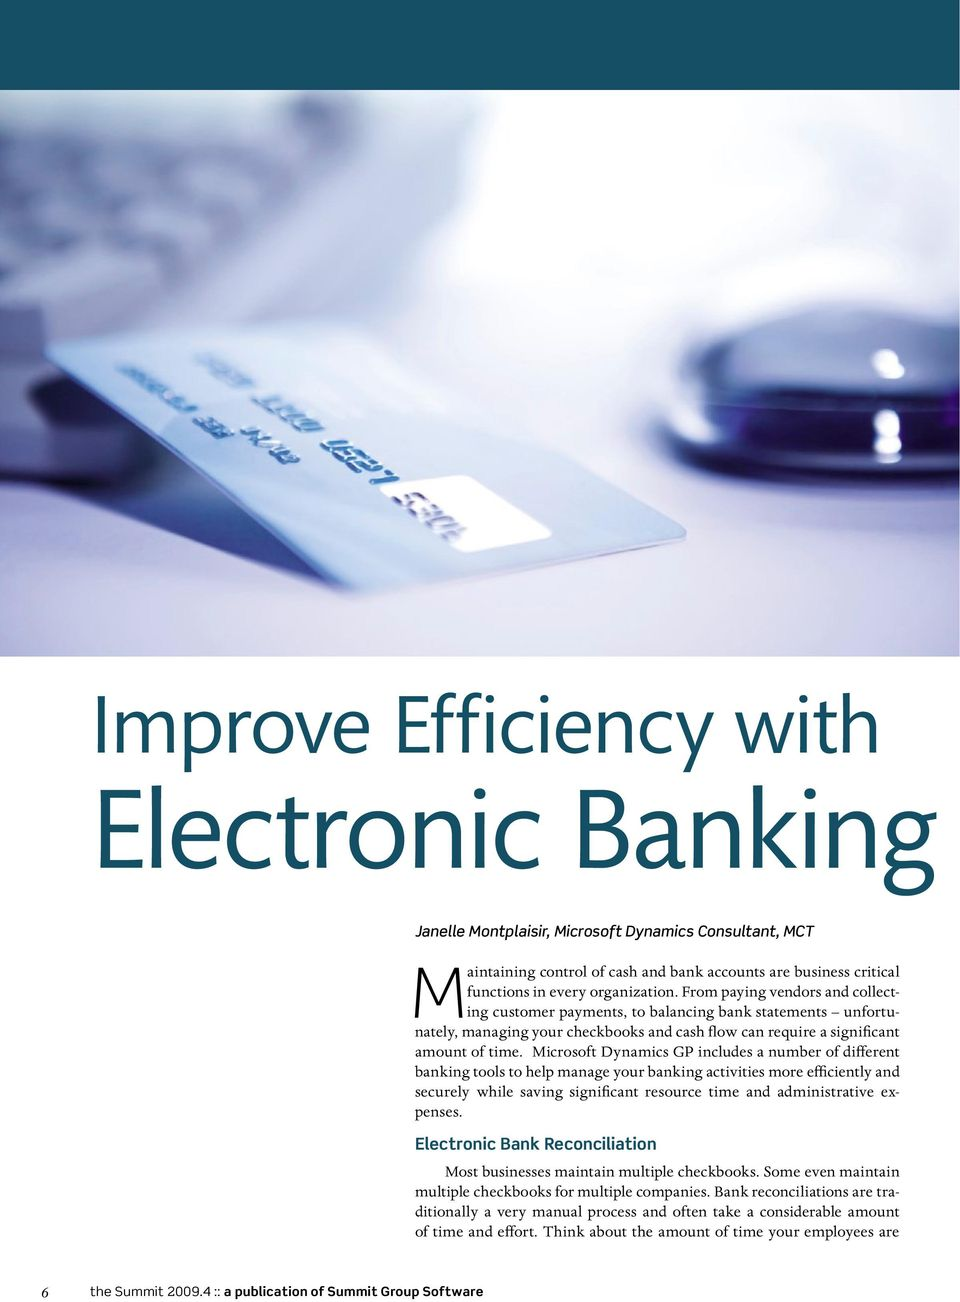 Microsoft Dynamics GP includes a number of different banking tools to help manage your banking activities more efficiently and securely while saving significant resource time and administrative